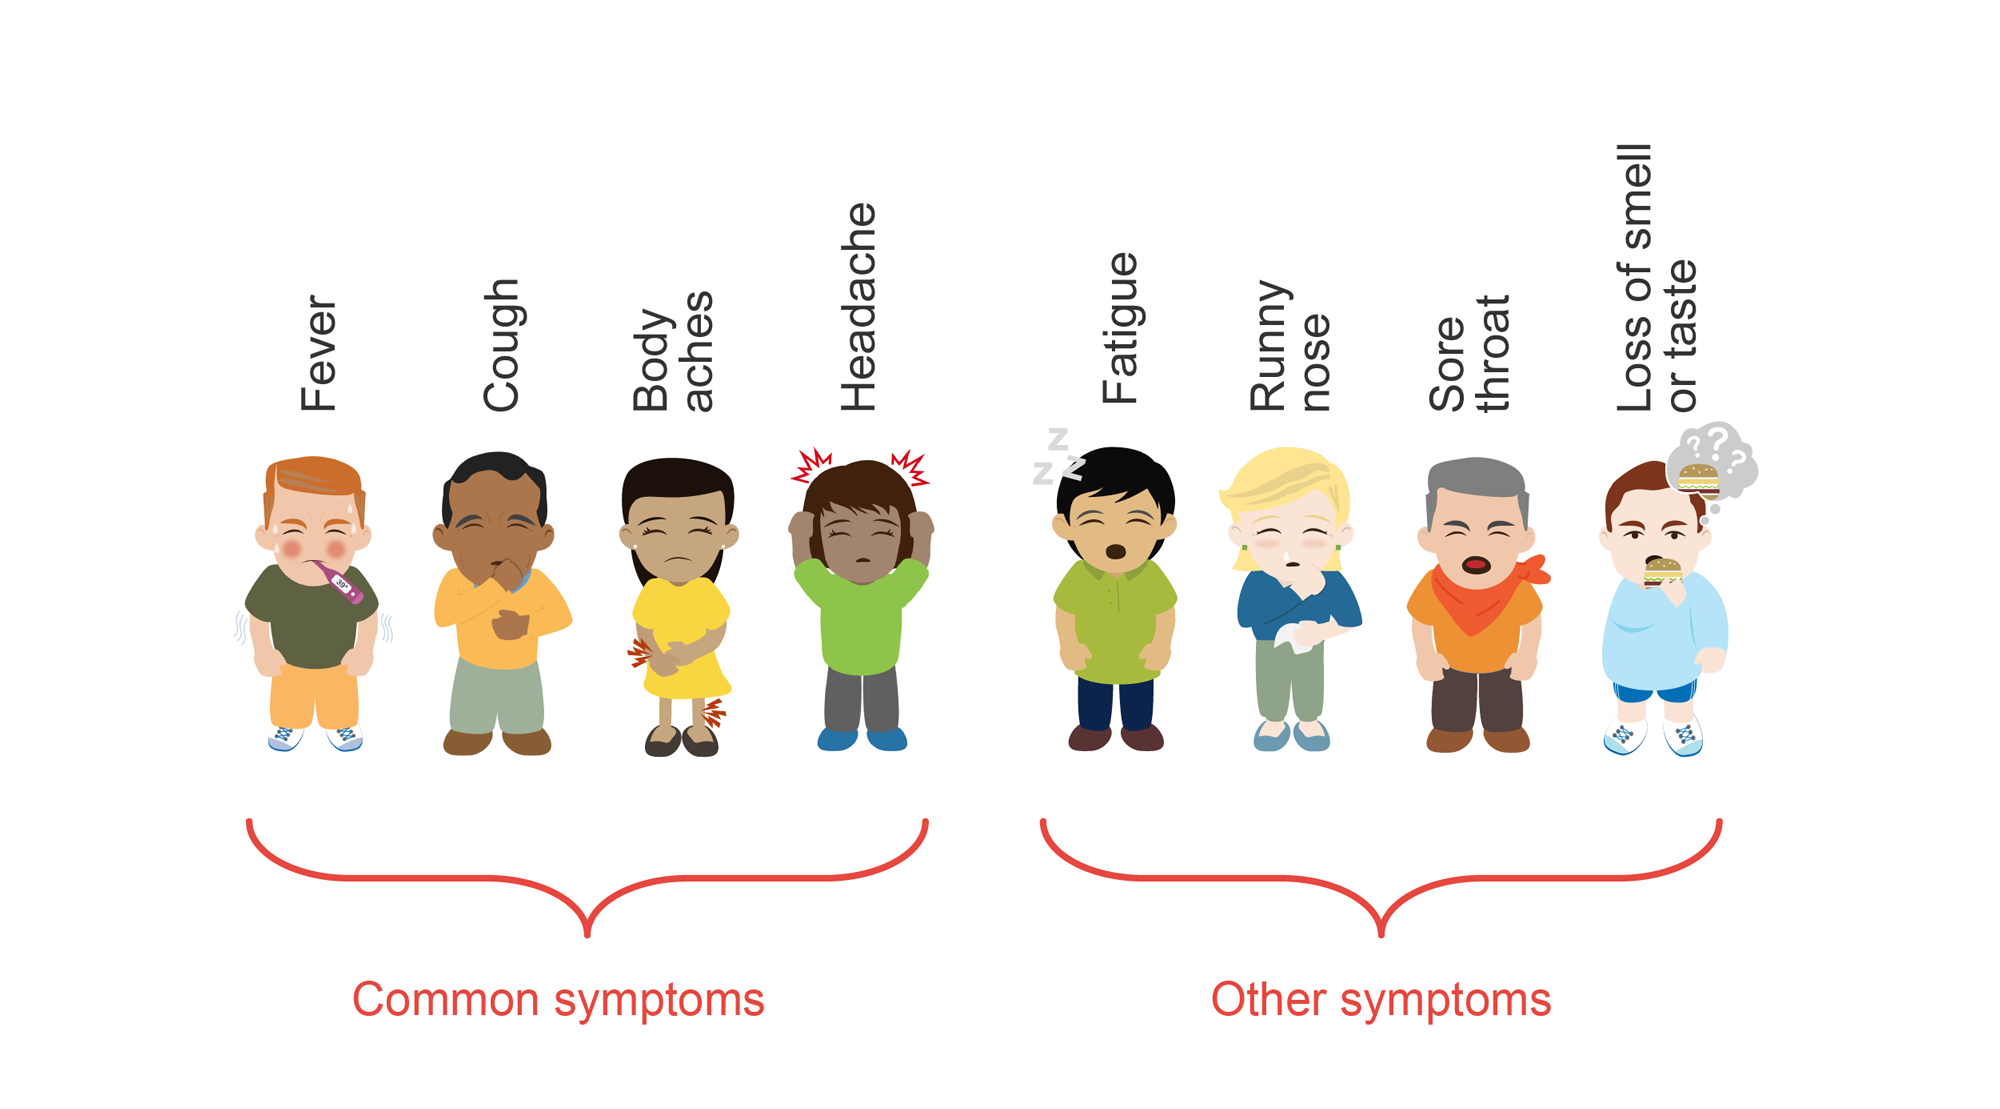 Eight cartoons showing symptoms of illness: fever, cough, runny nose, fatigue, headache, body aches, sore throat, fatigue, and loss of smell or taste.